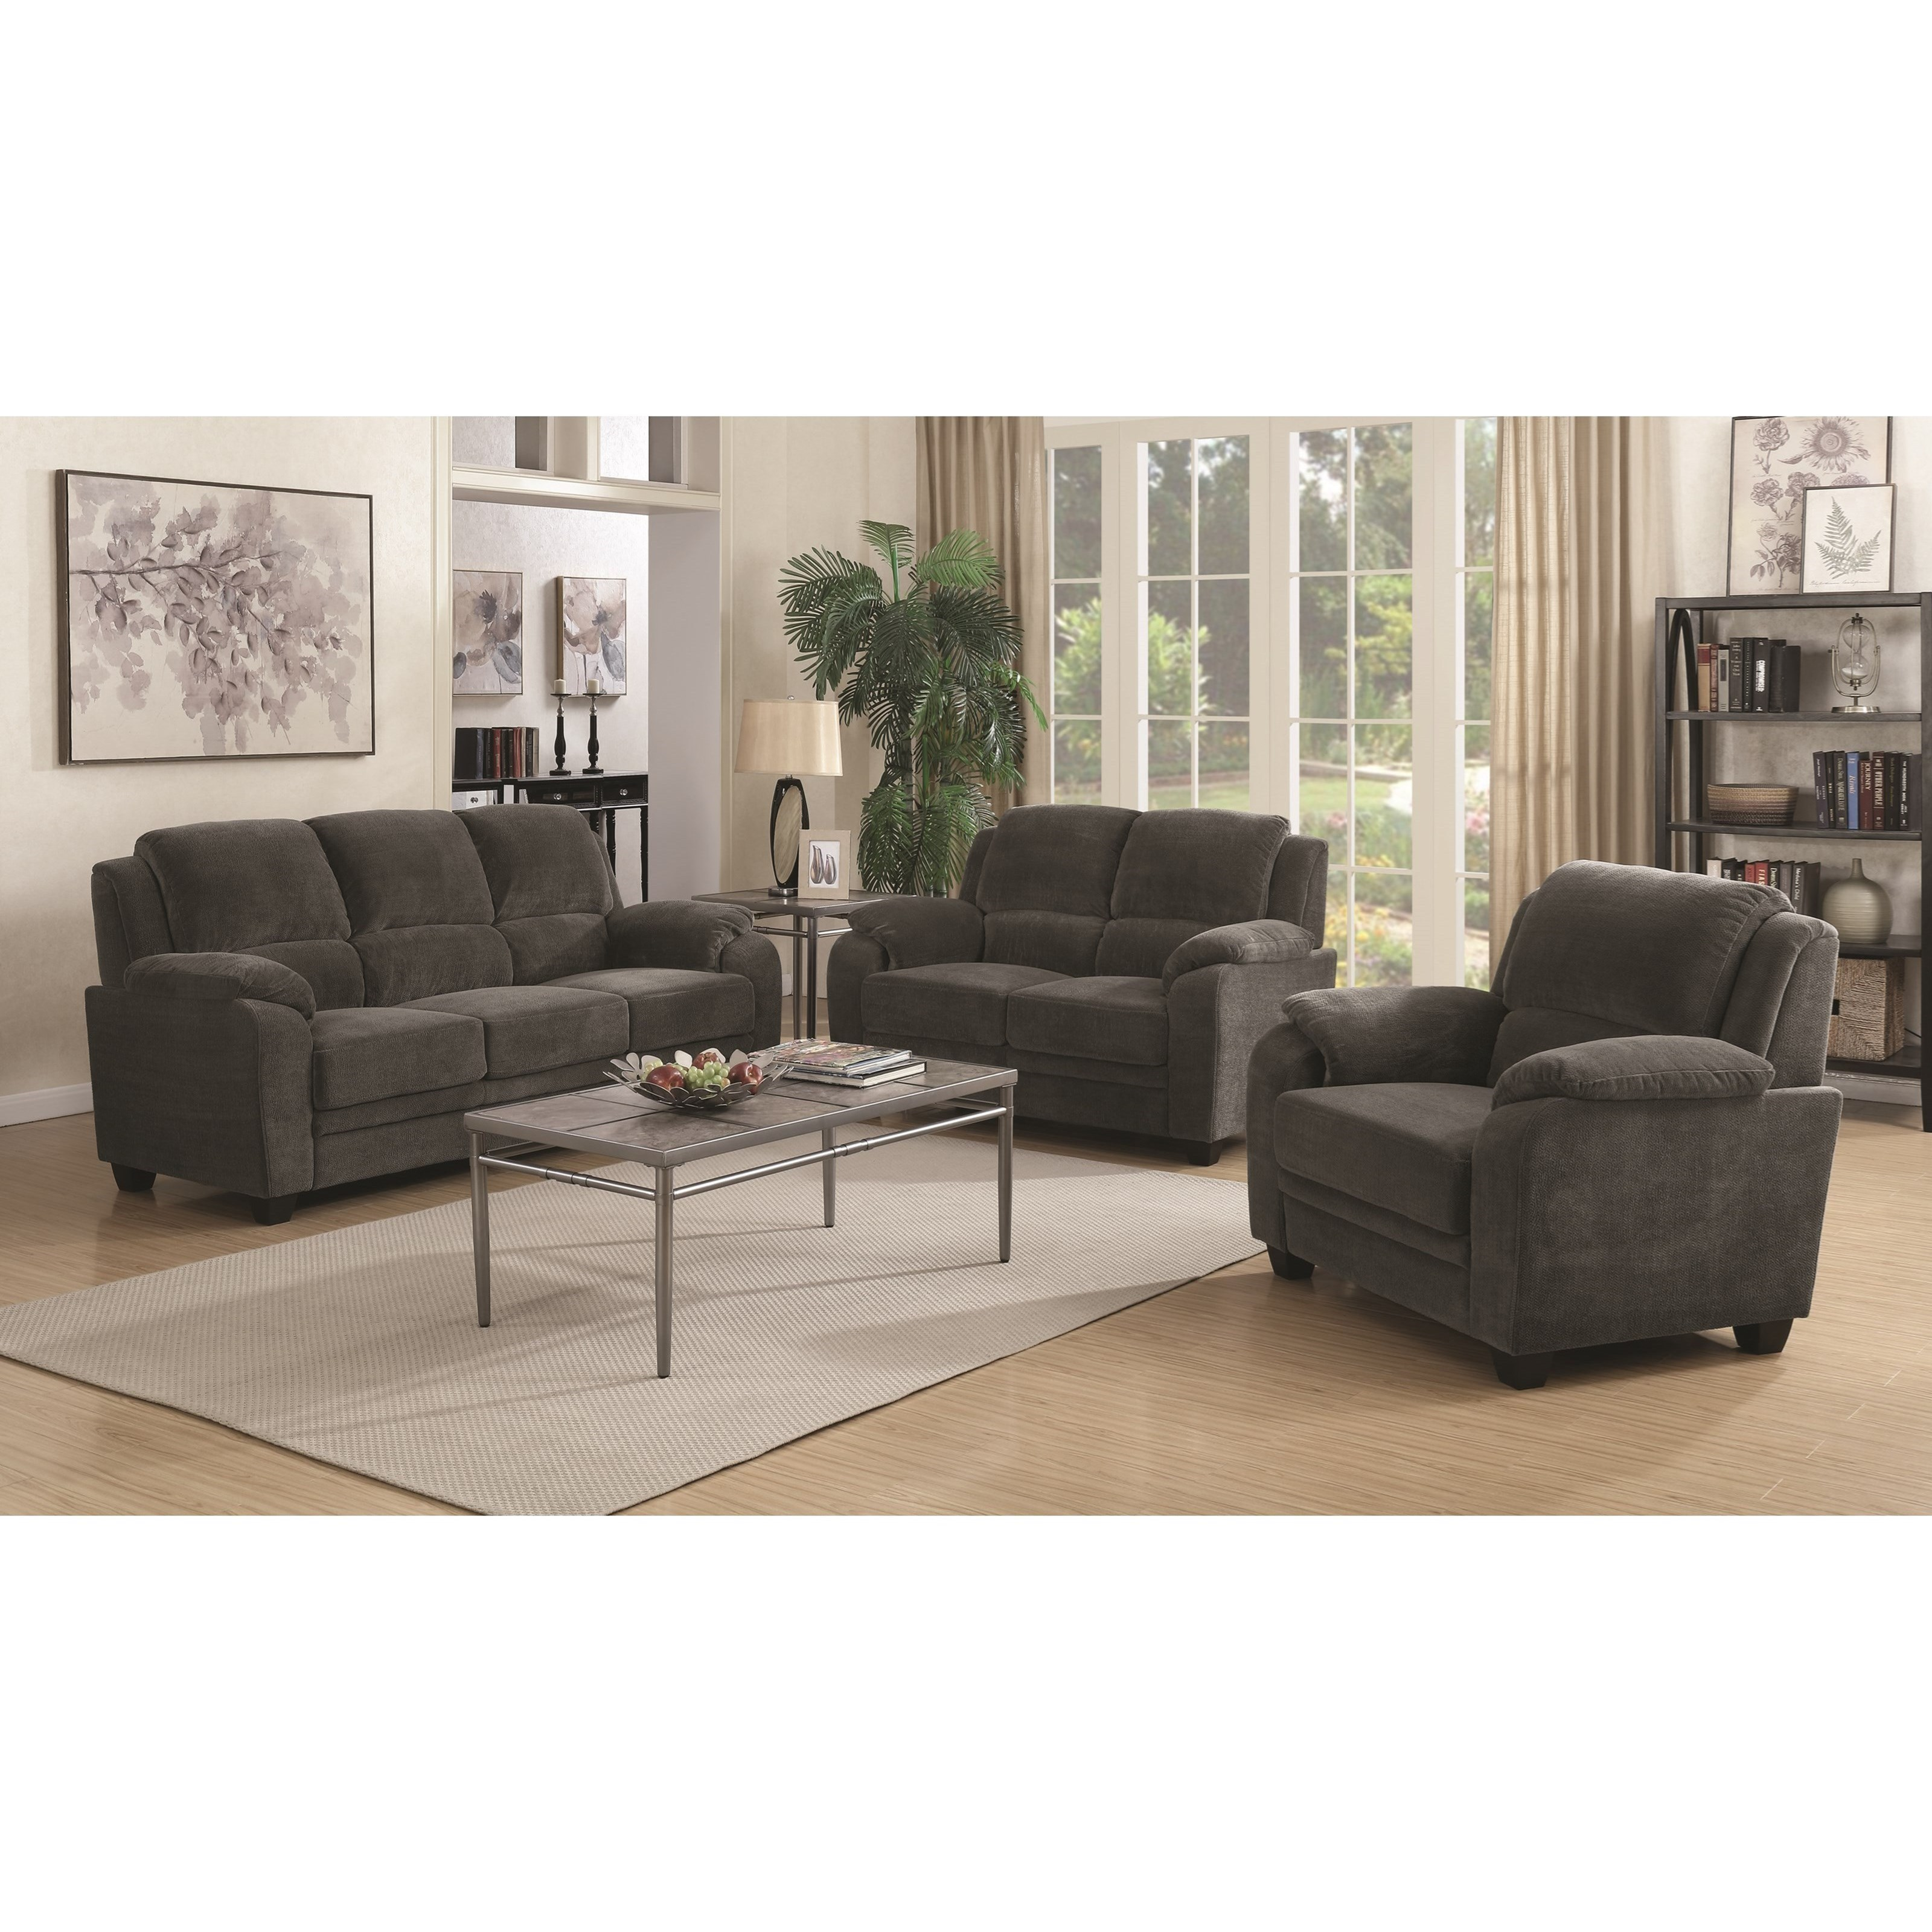 Northend Stationary Living Room Group by Coaster at Northeast Factory Direct